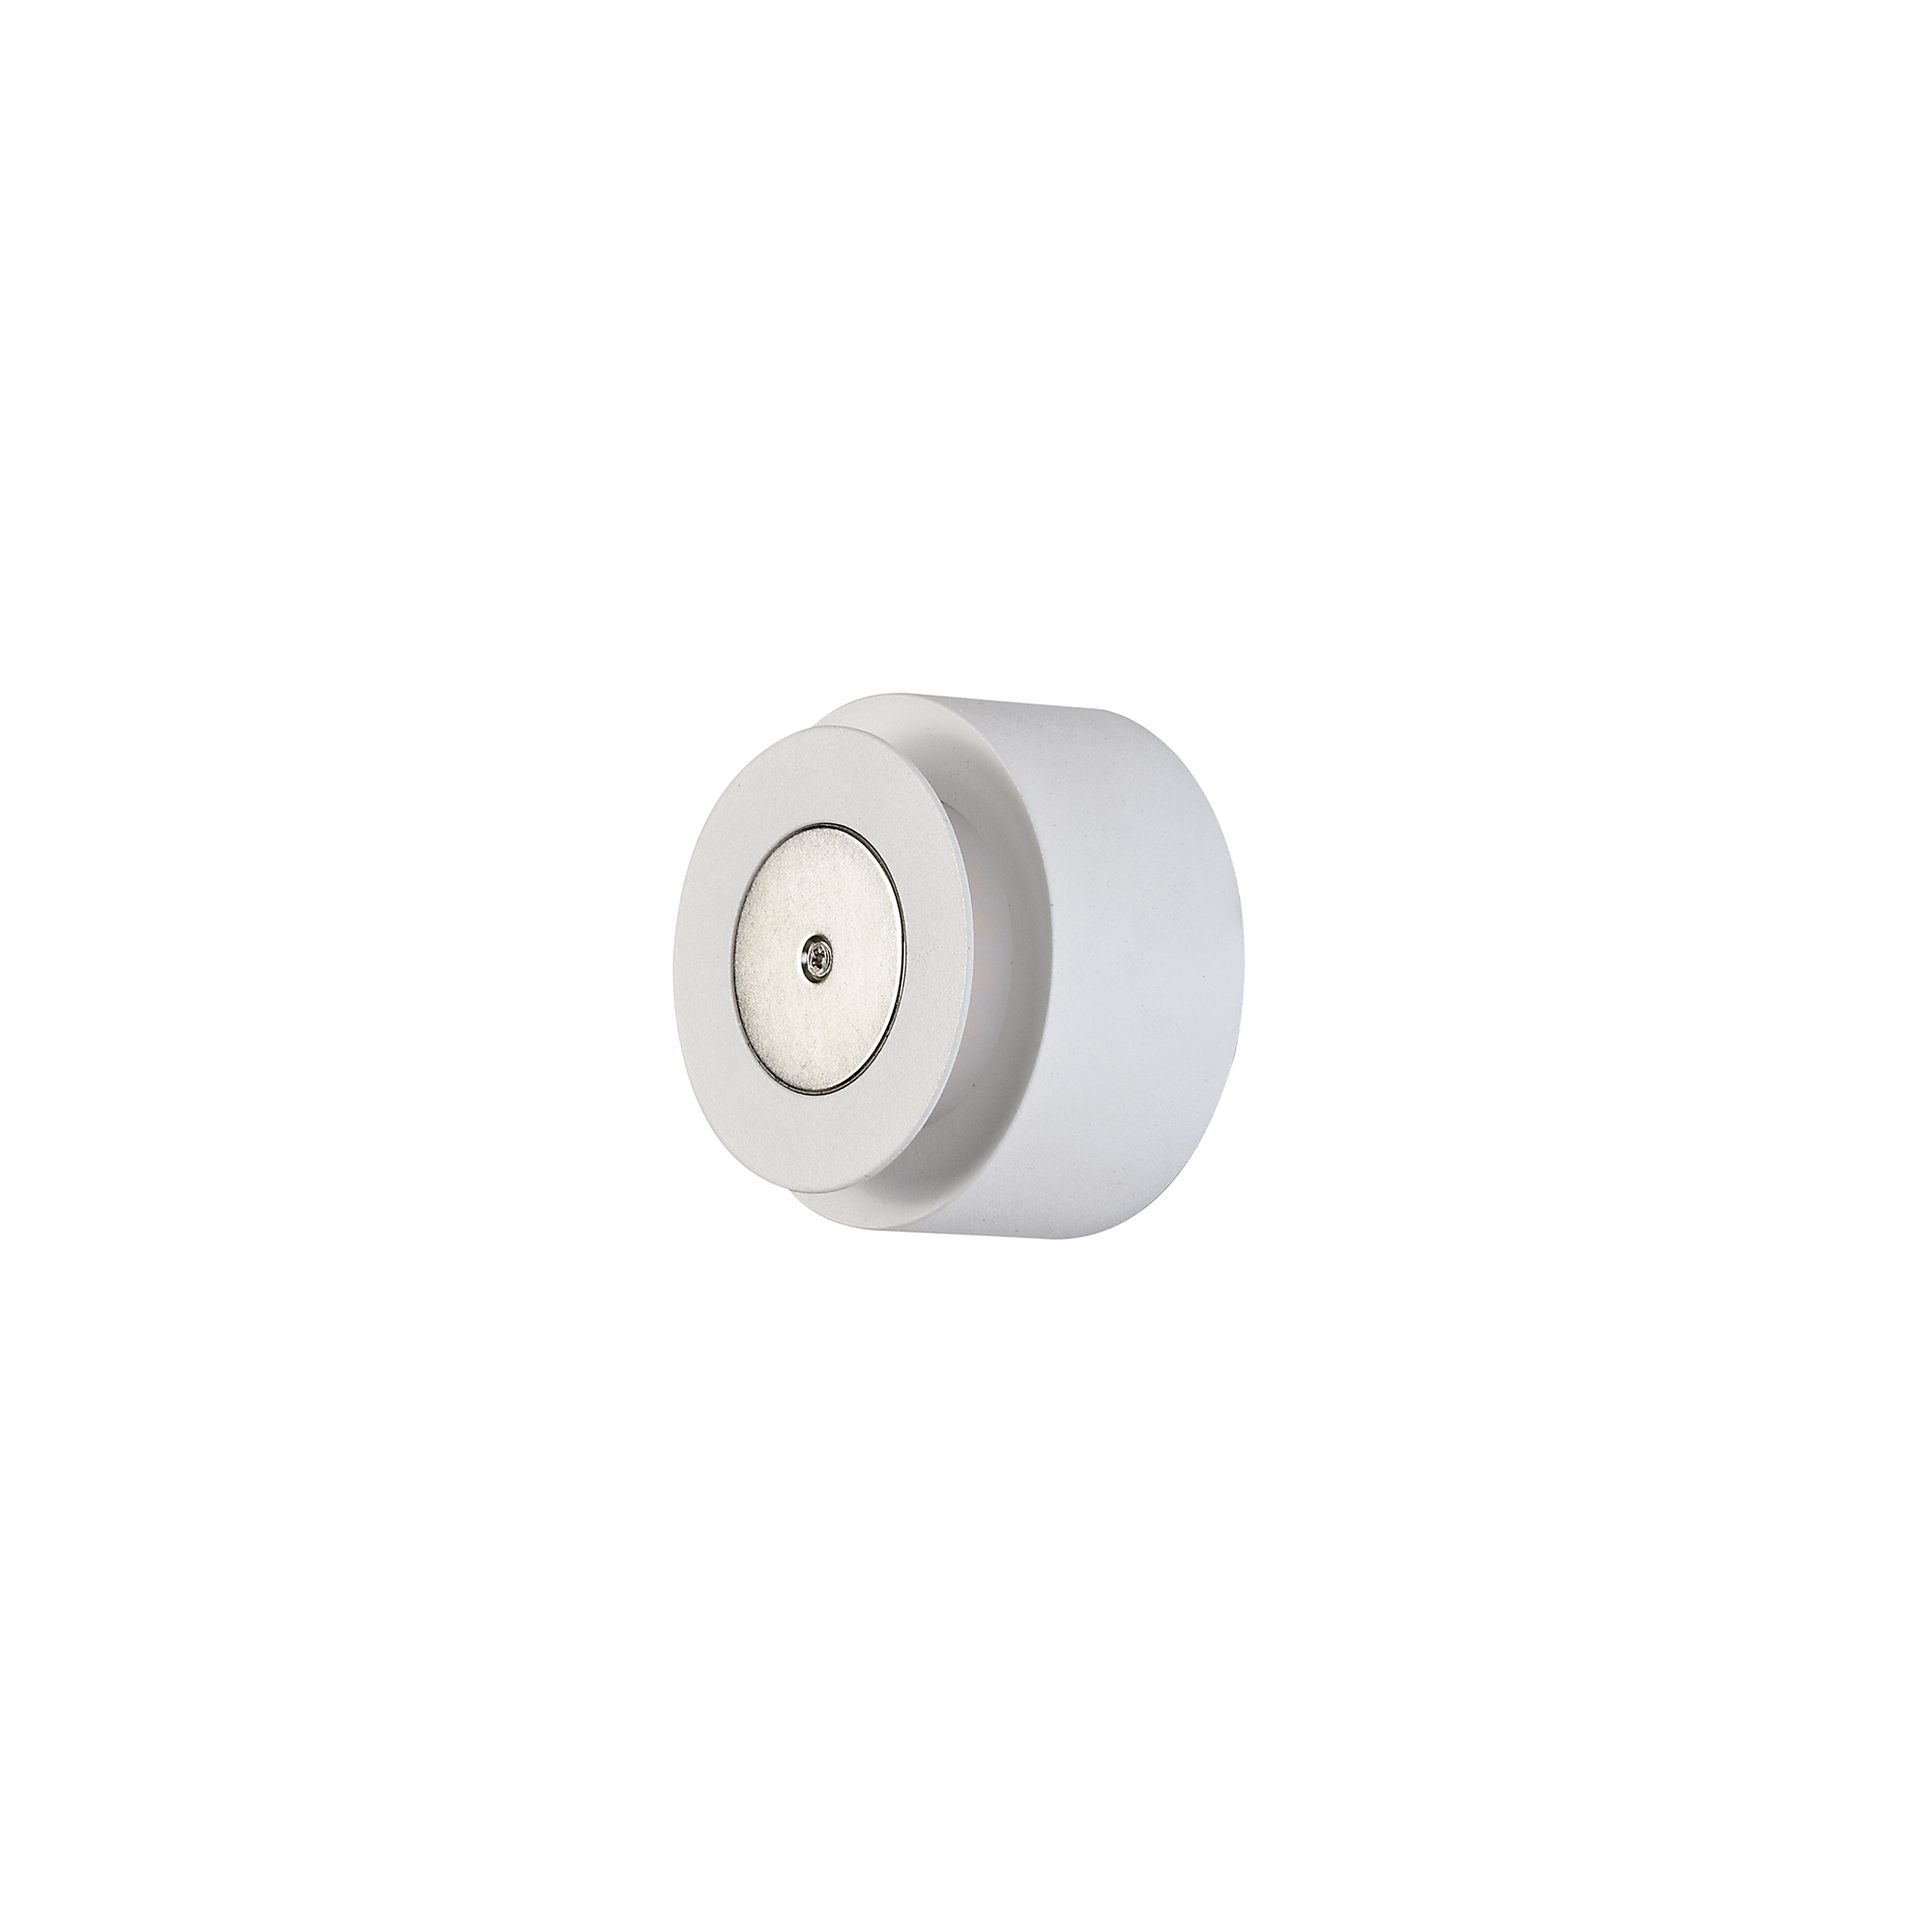 Magnetic Base Wall Lamp, 12W LED 3000K 498lm, 20/19cm Round Right Offset, Frosted Diffuser